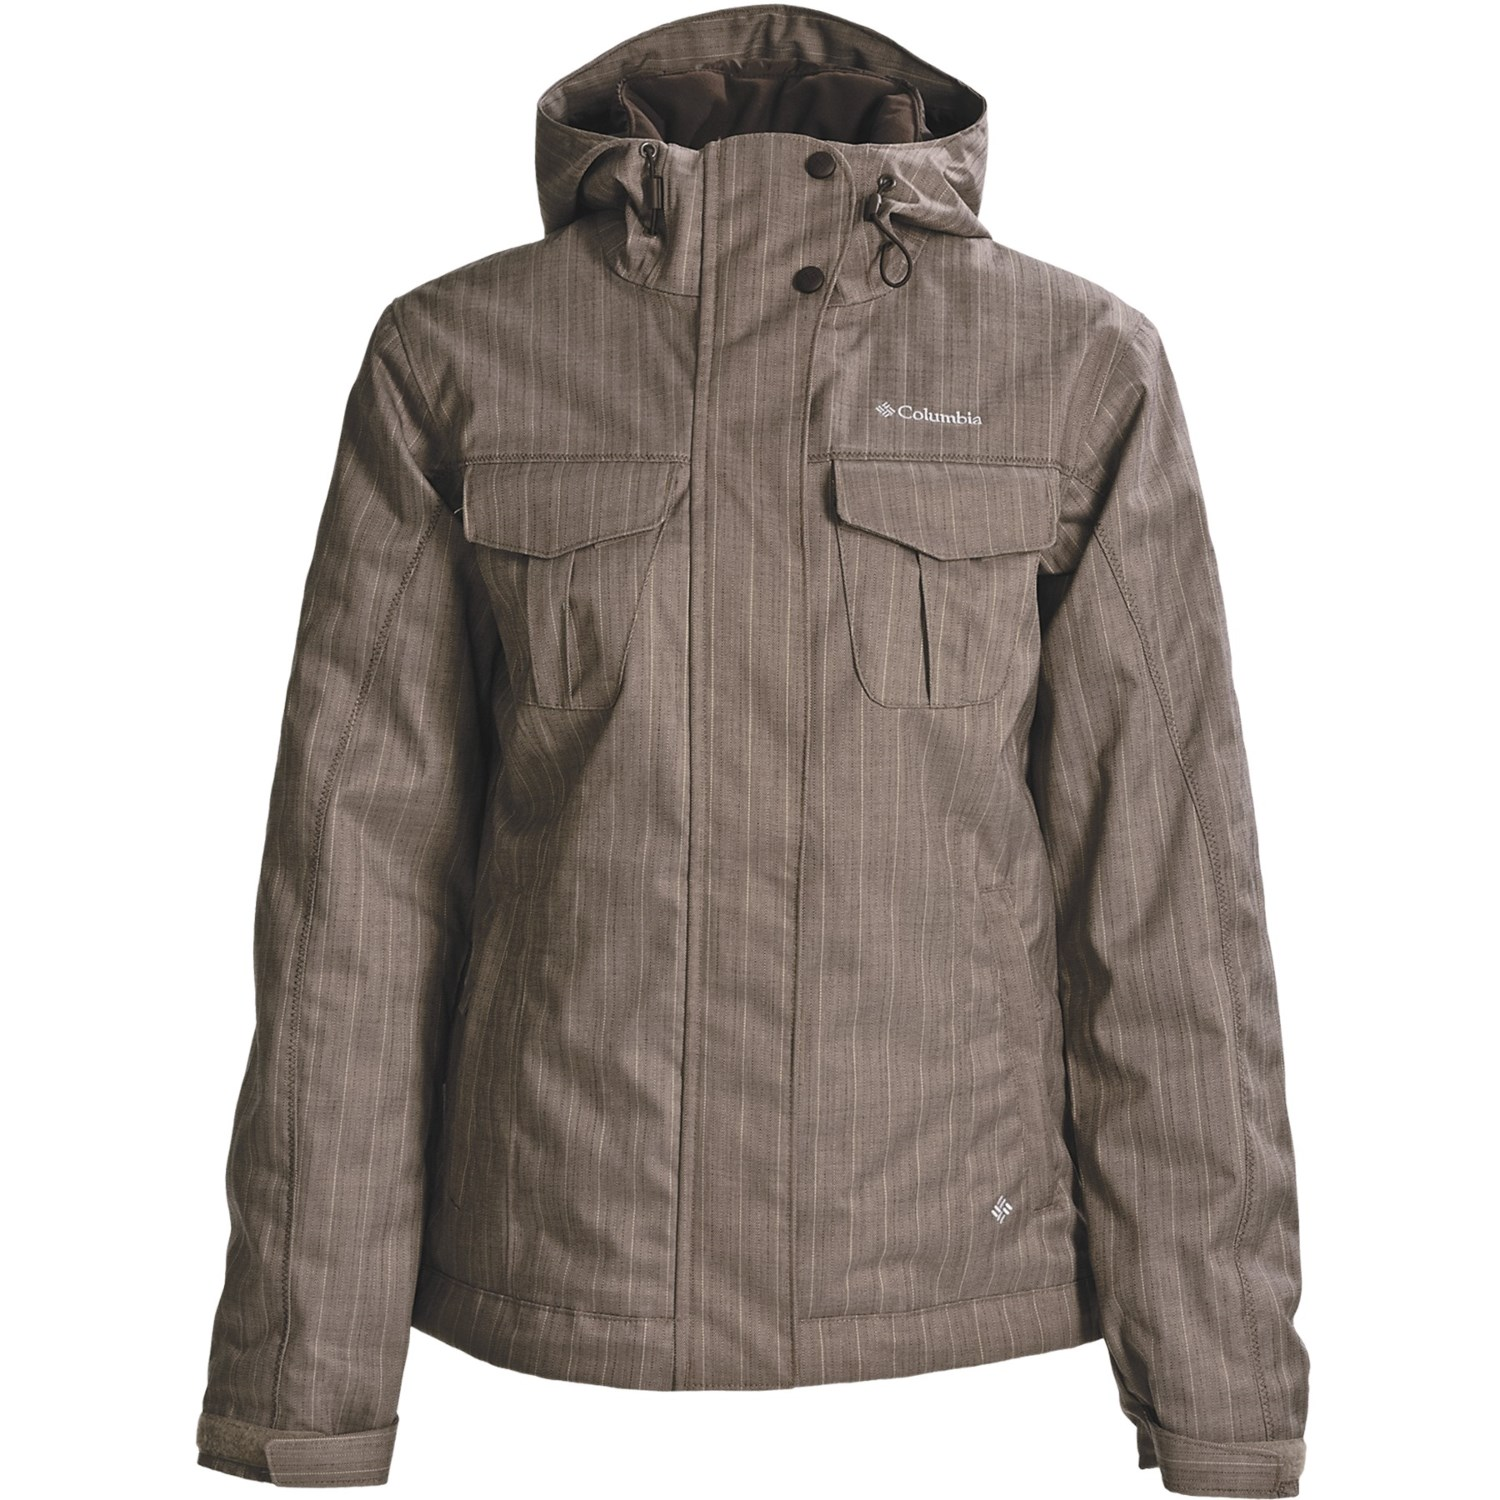 Columbia Sportswear Riva Ridge Jacket (For Women) 4427N